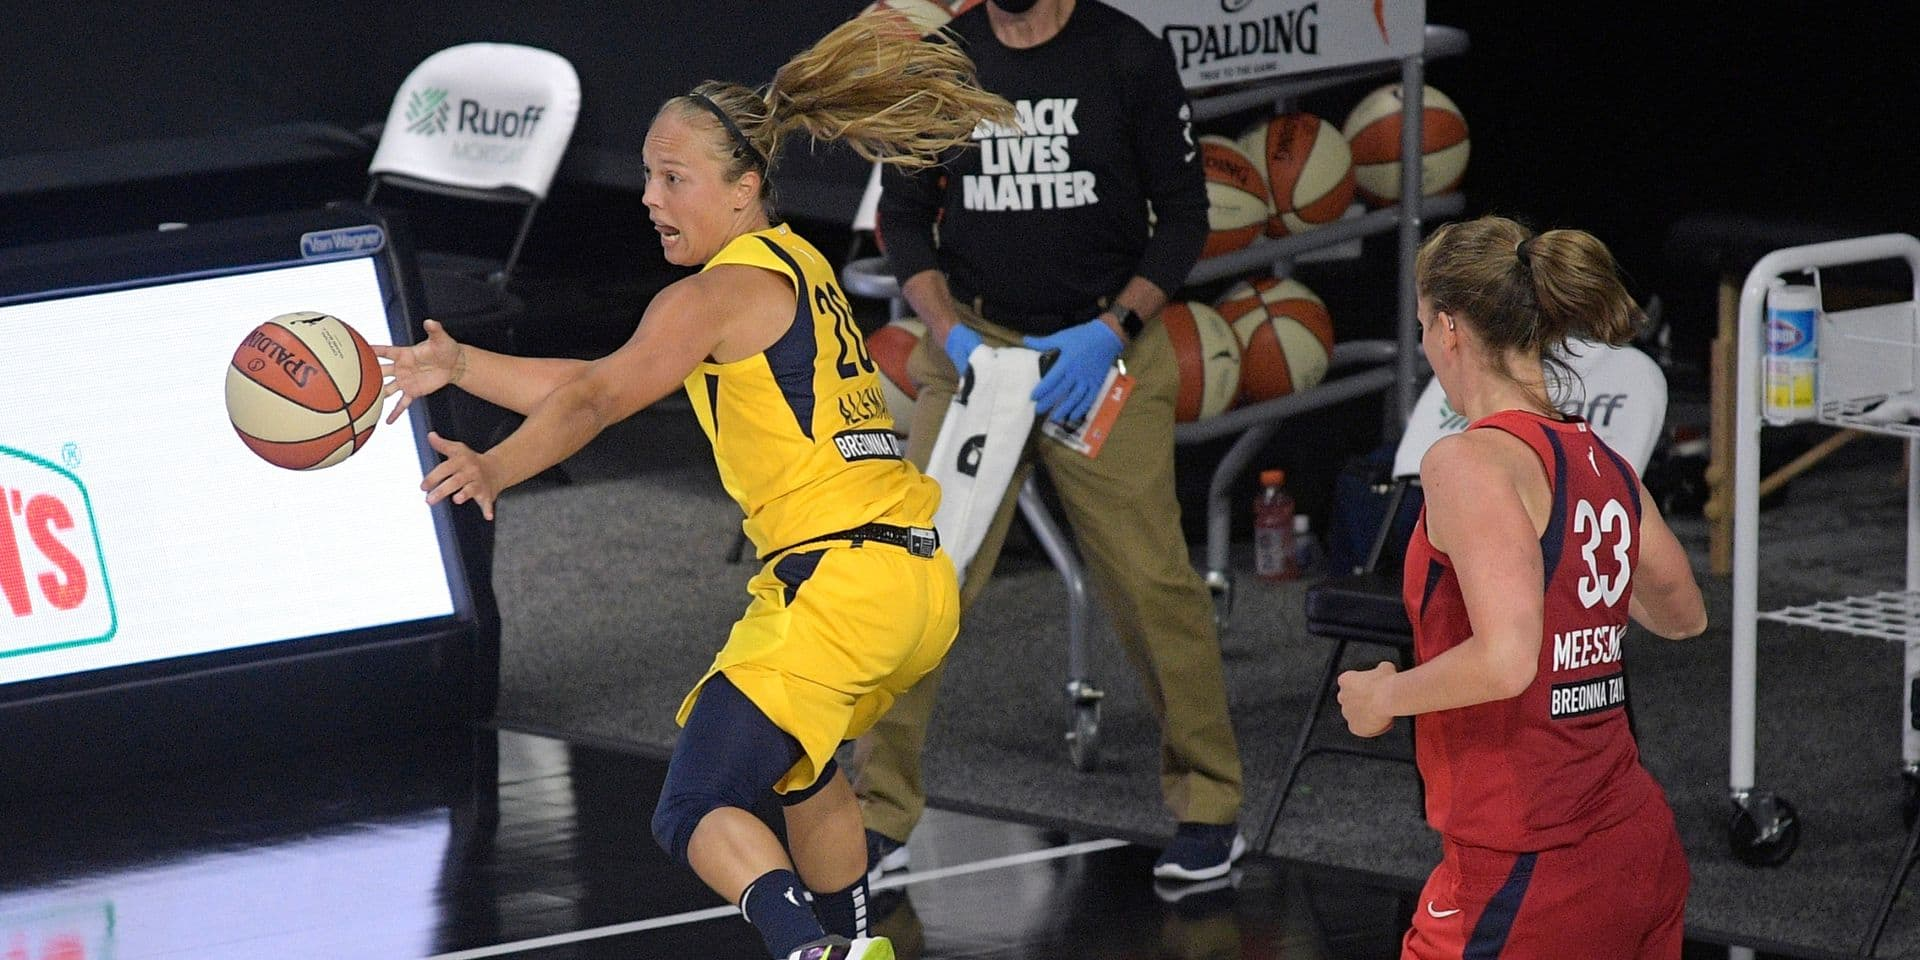 WNBA: l'exploit de Julie Allemand (12 pts, 7 rbds, 6 ass.) et Indiana, qui surprennent le leader